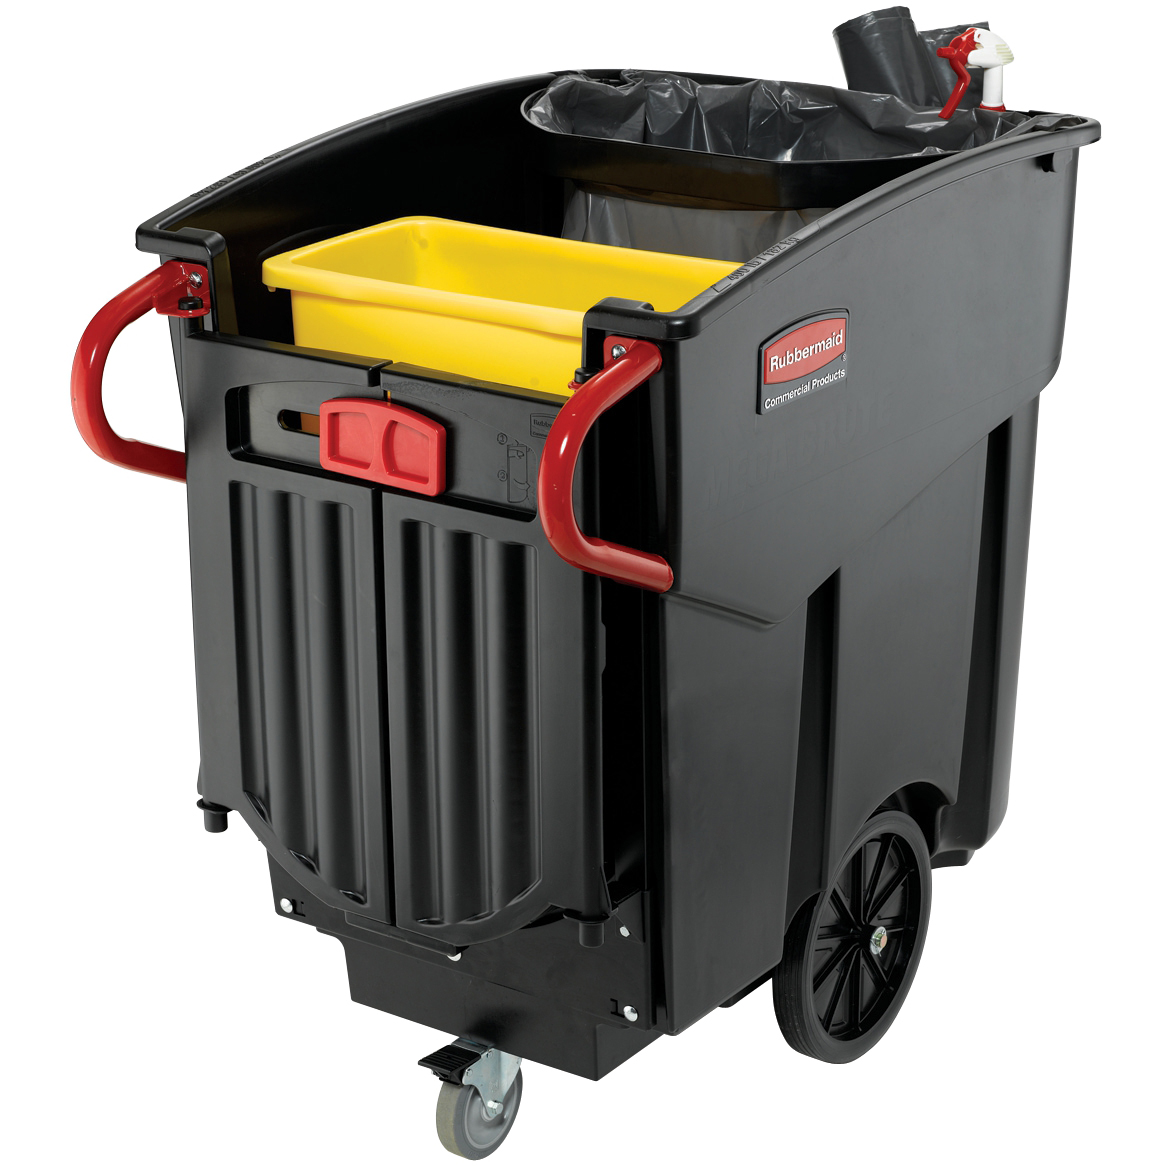 Trolleys Rubbermaid Mega Brute Waste Collection Cart 450 Litres W1330xD700xH1080mm Ref FG9W7100BLA